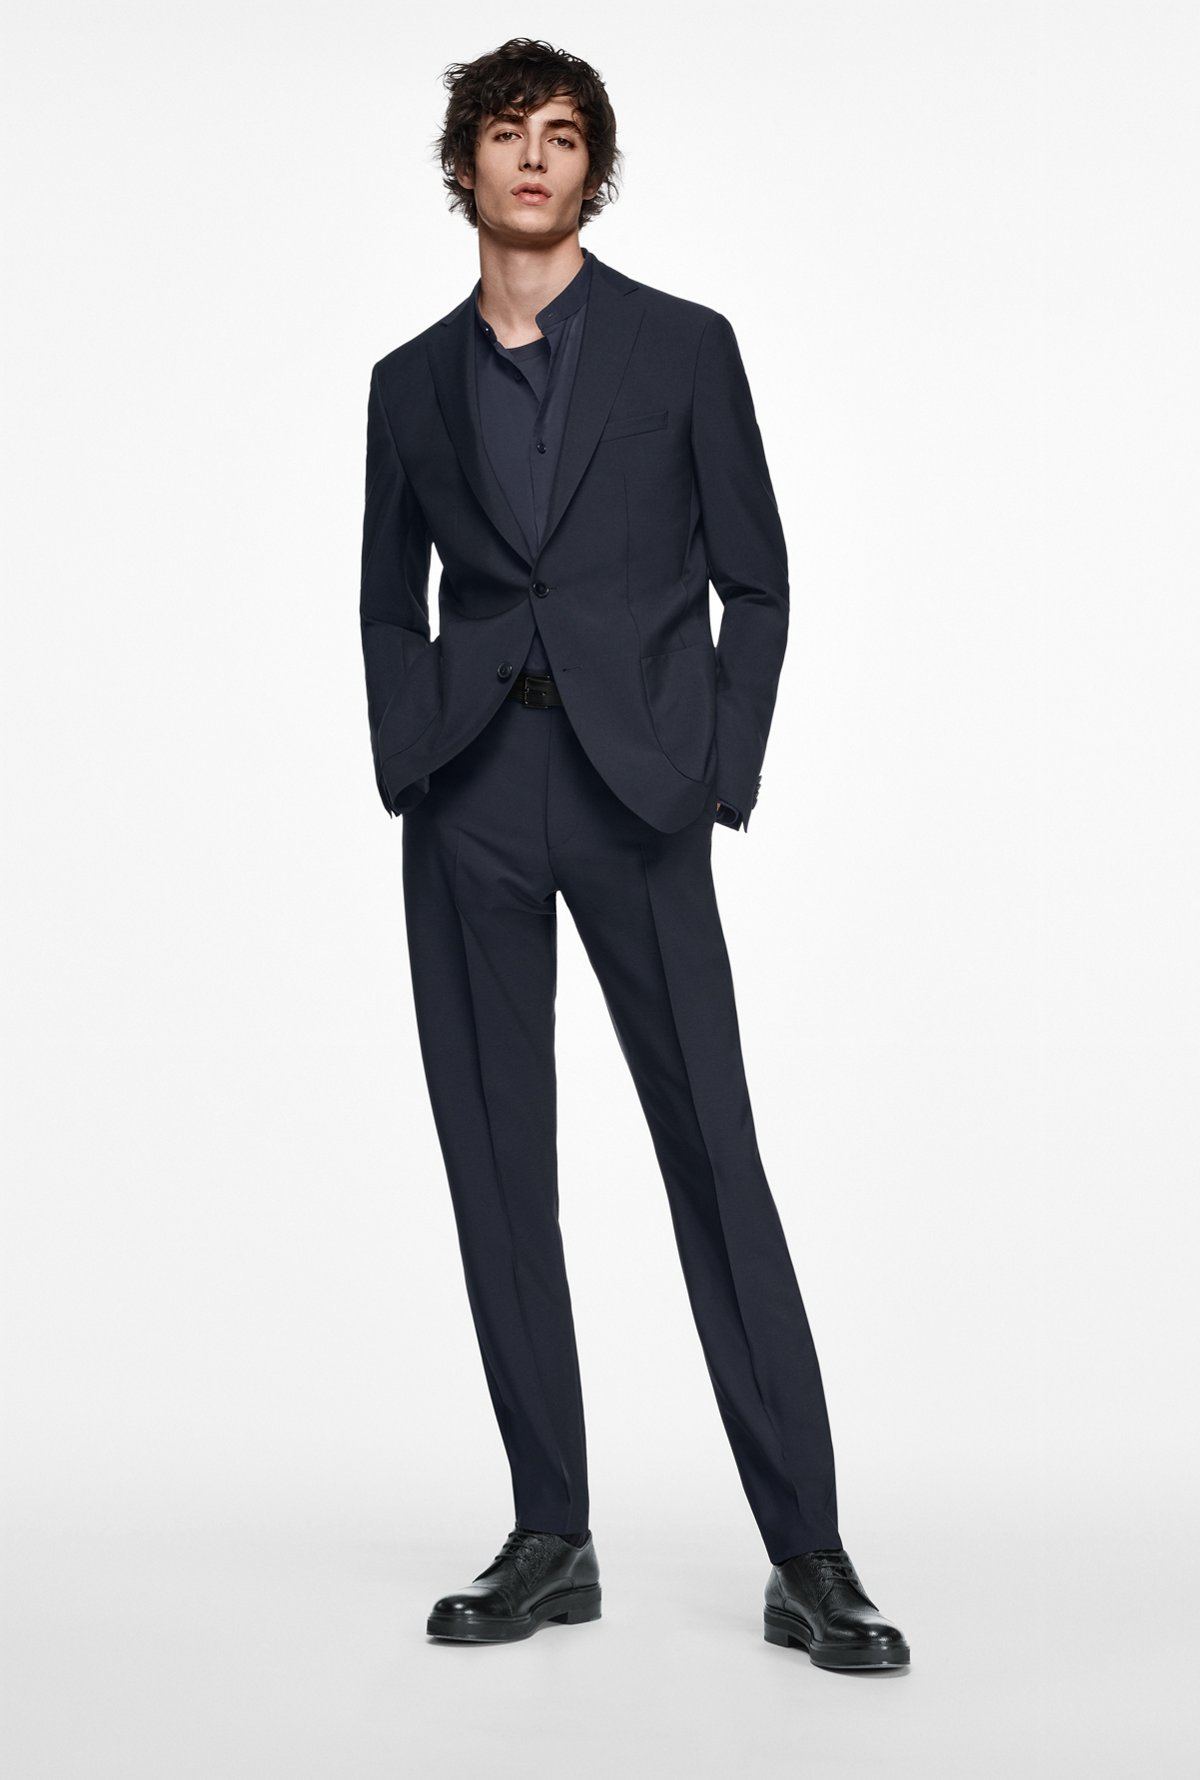 Man Wearing A Dark Blue Suit For City Wedding Occasion By Boss